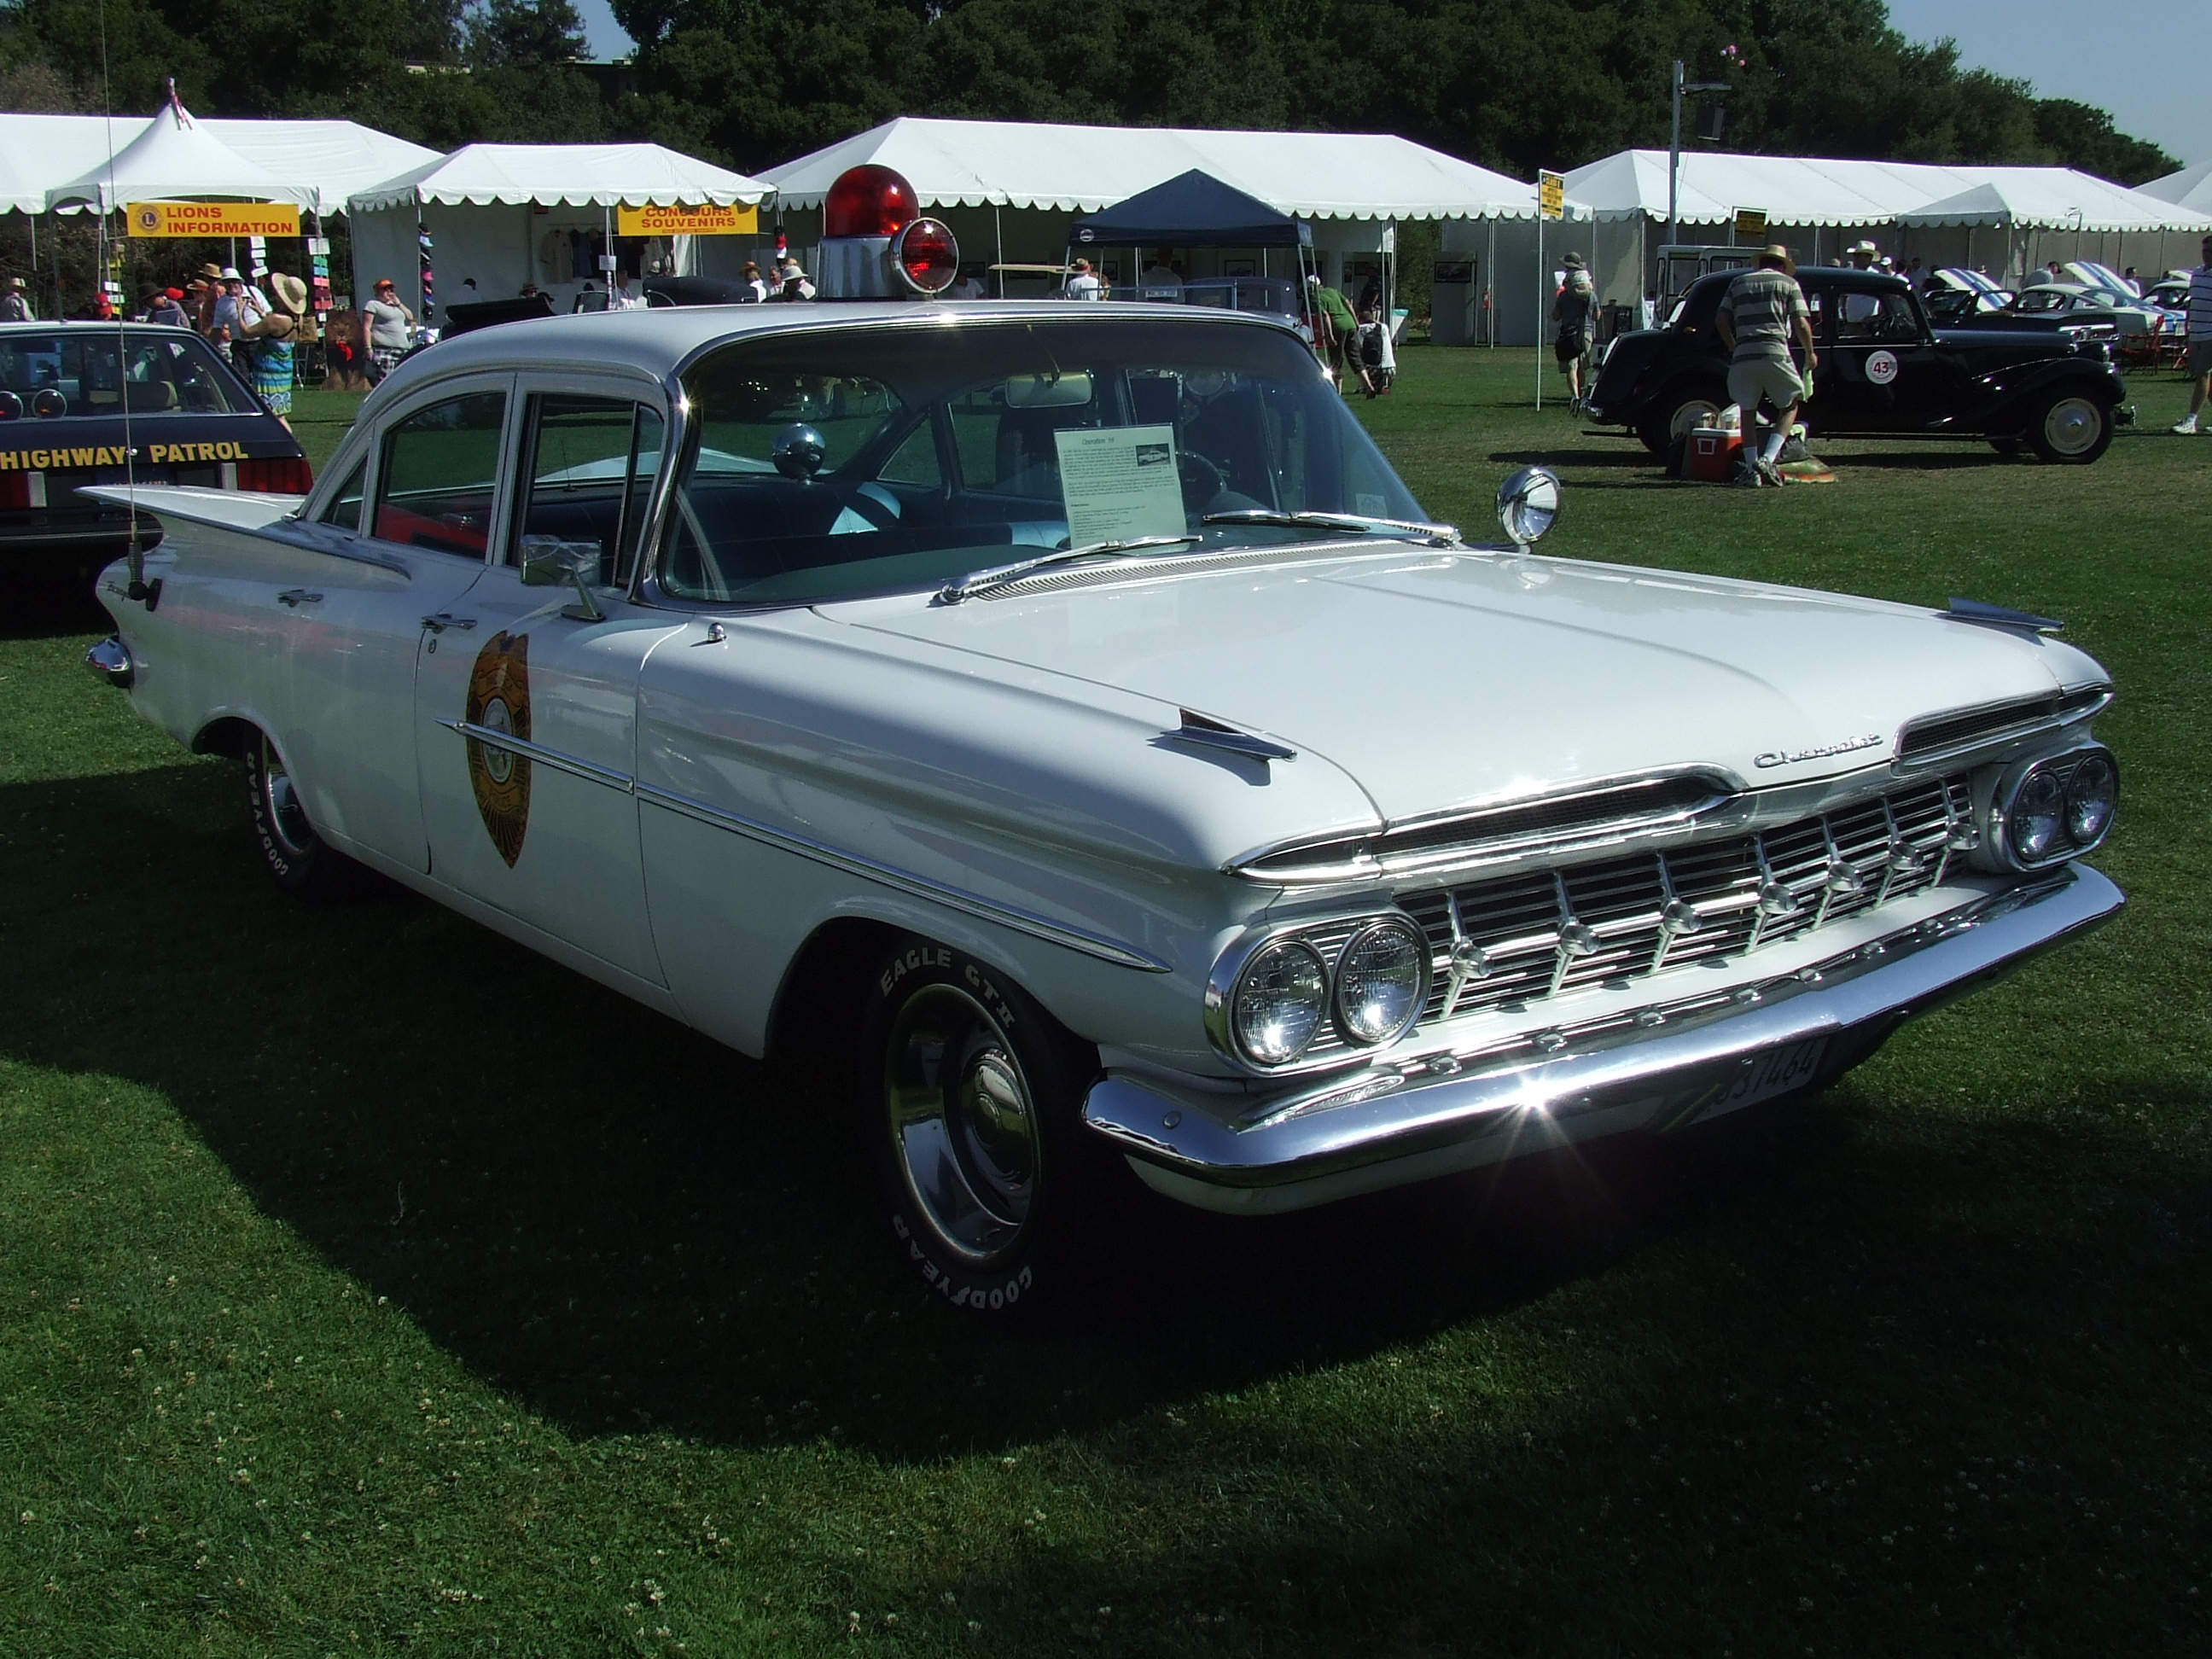 1959 Chevrolet Biscayne (Pacifica Police Car) 2 (JC) | Flickr ...